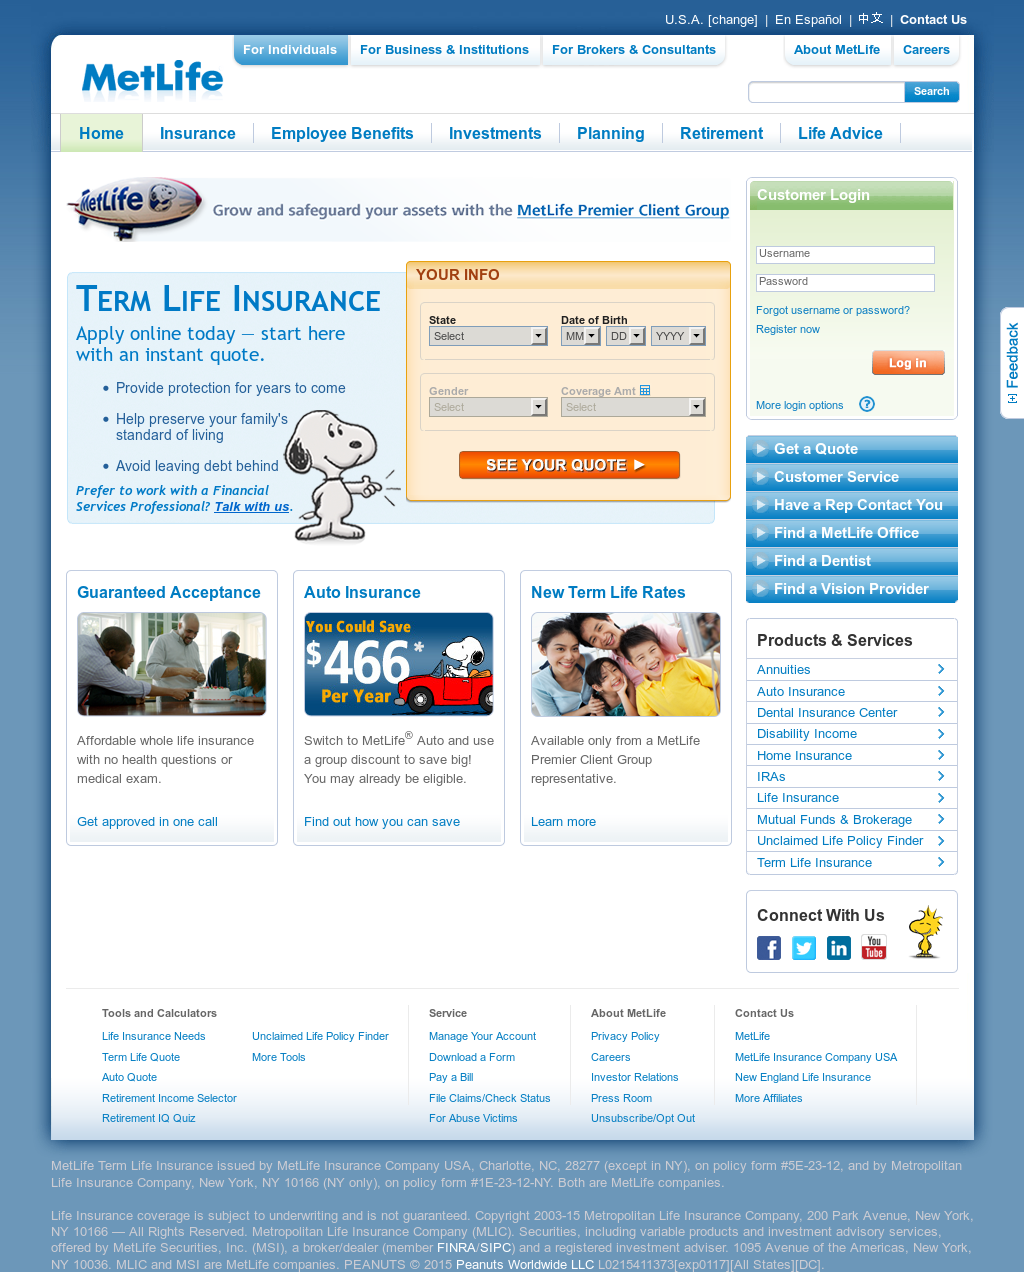 Metlife Life Insurance Reviews >> Metlife Competitors Revenue And Employees Owler Company